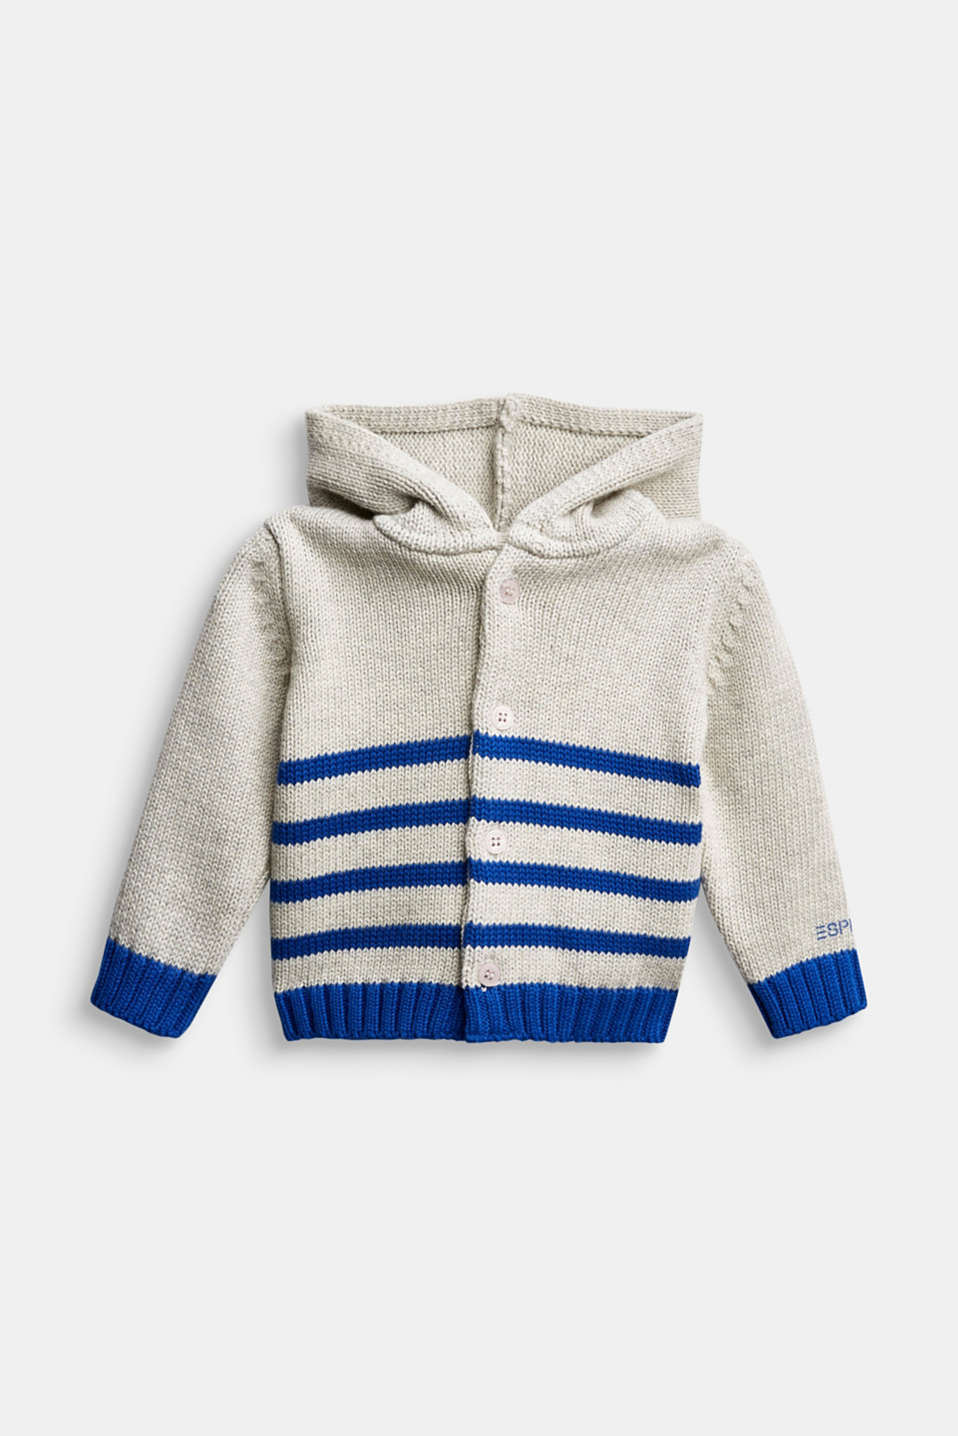 Esprit - Knitted cardigan made of 100% organic cotton